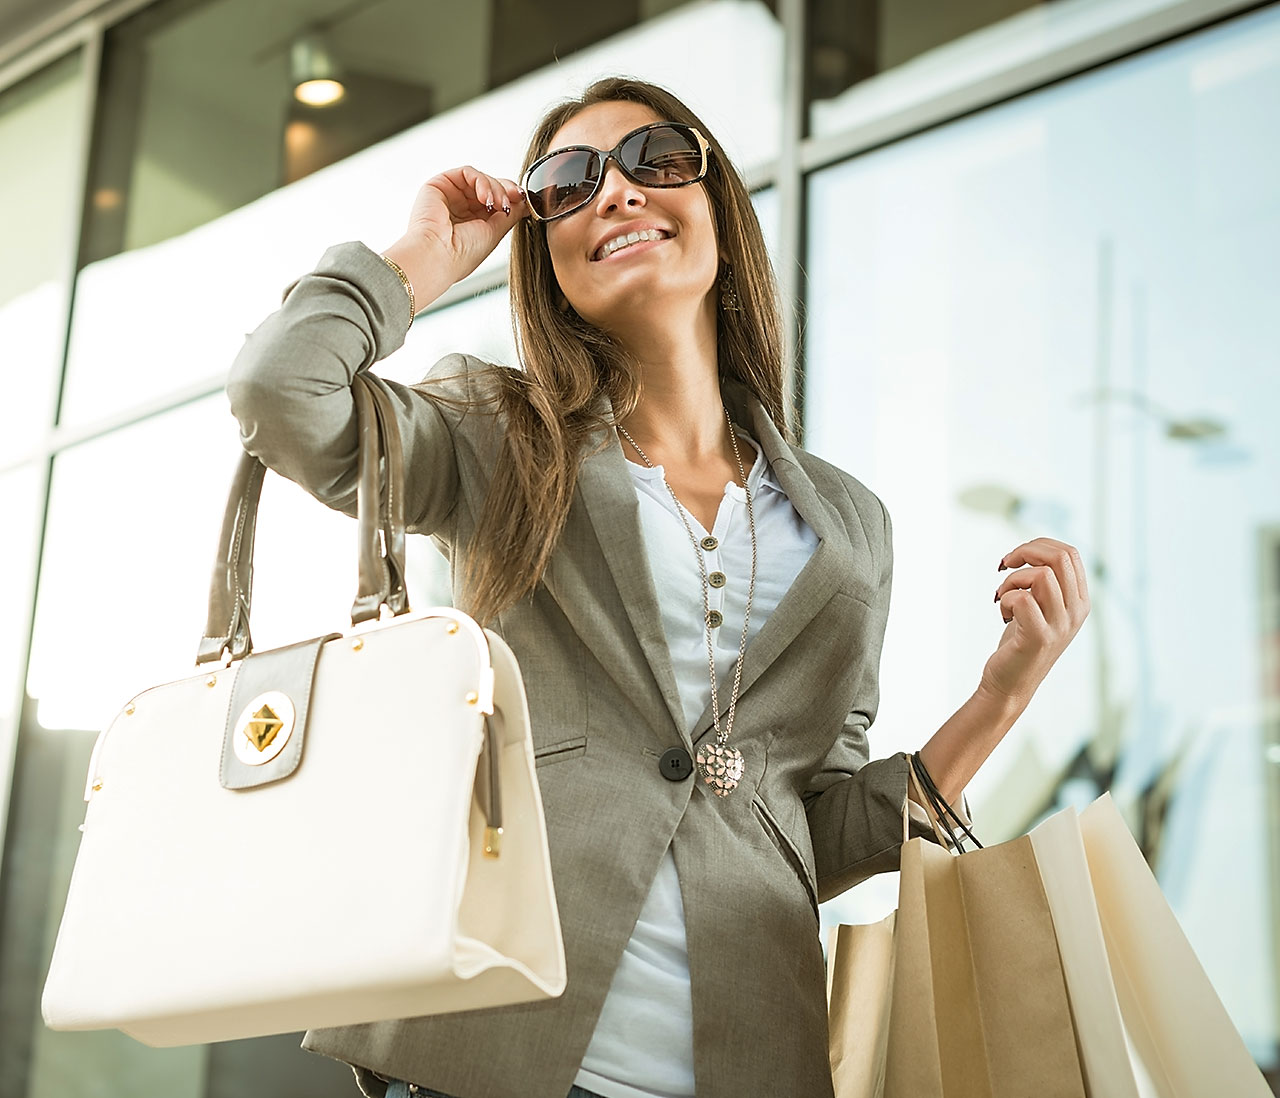 Woman with sunglasses carrying shopping bags